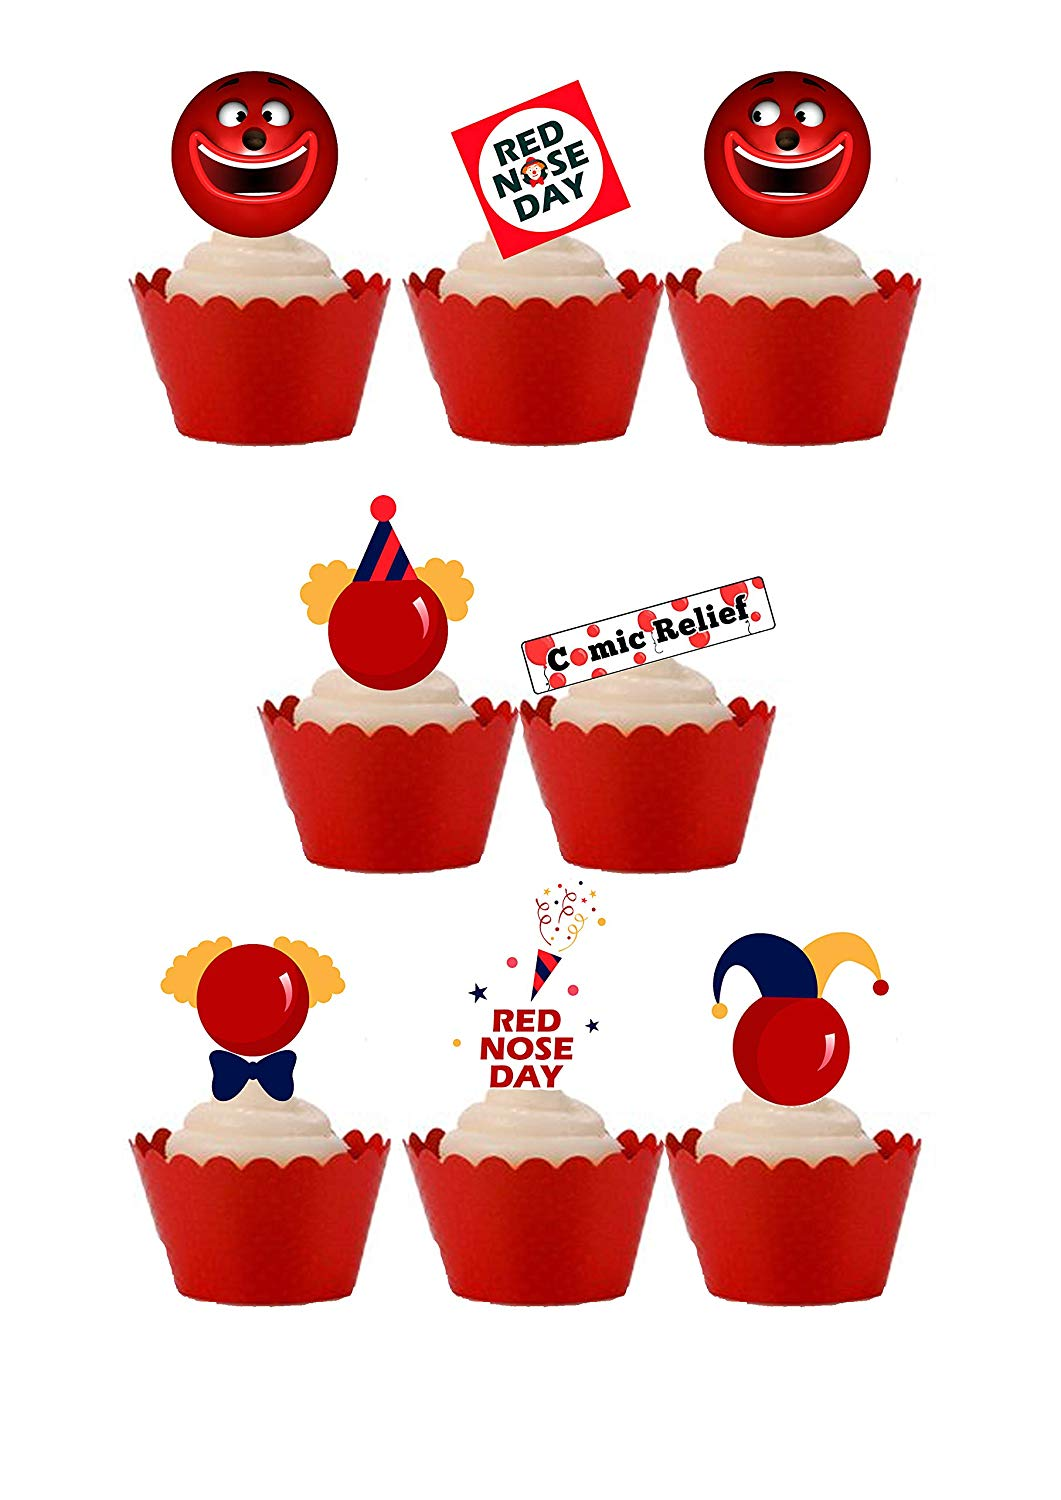 24 Stand Up Red Nose Day Comic Relief Themed Premium Edible Wafer Paper  Cake Toppers Decorations.